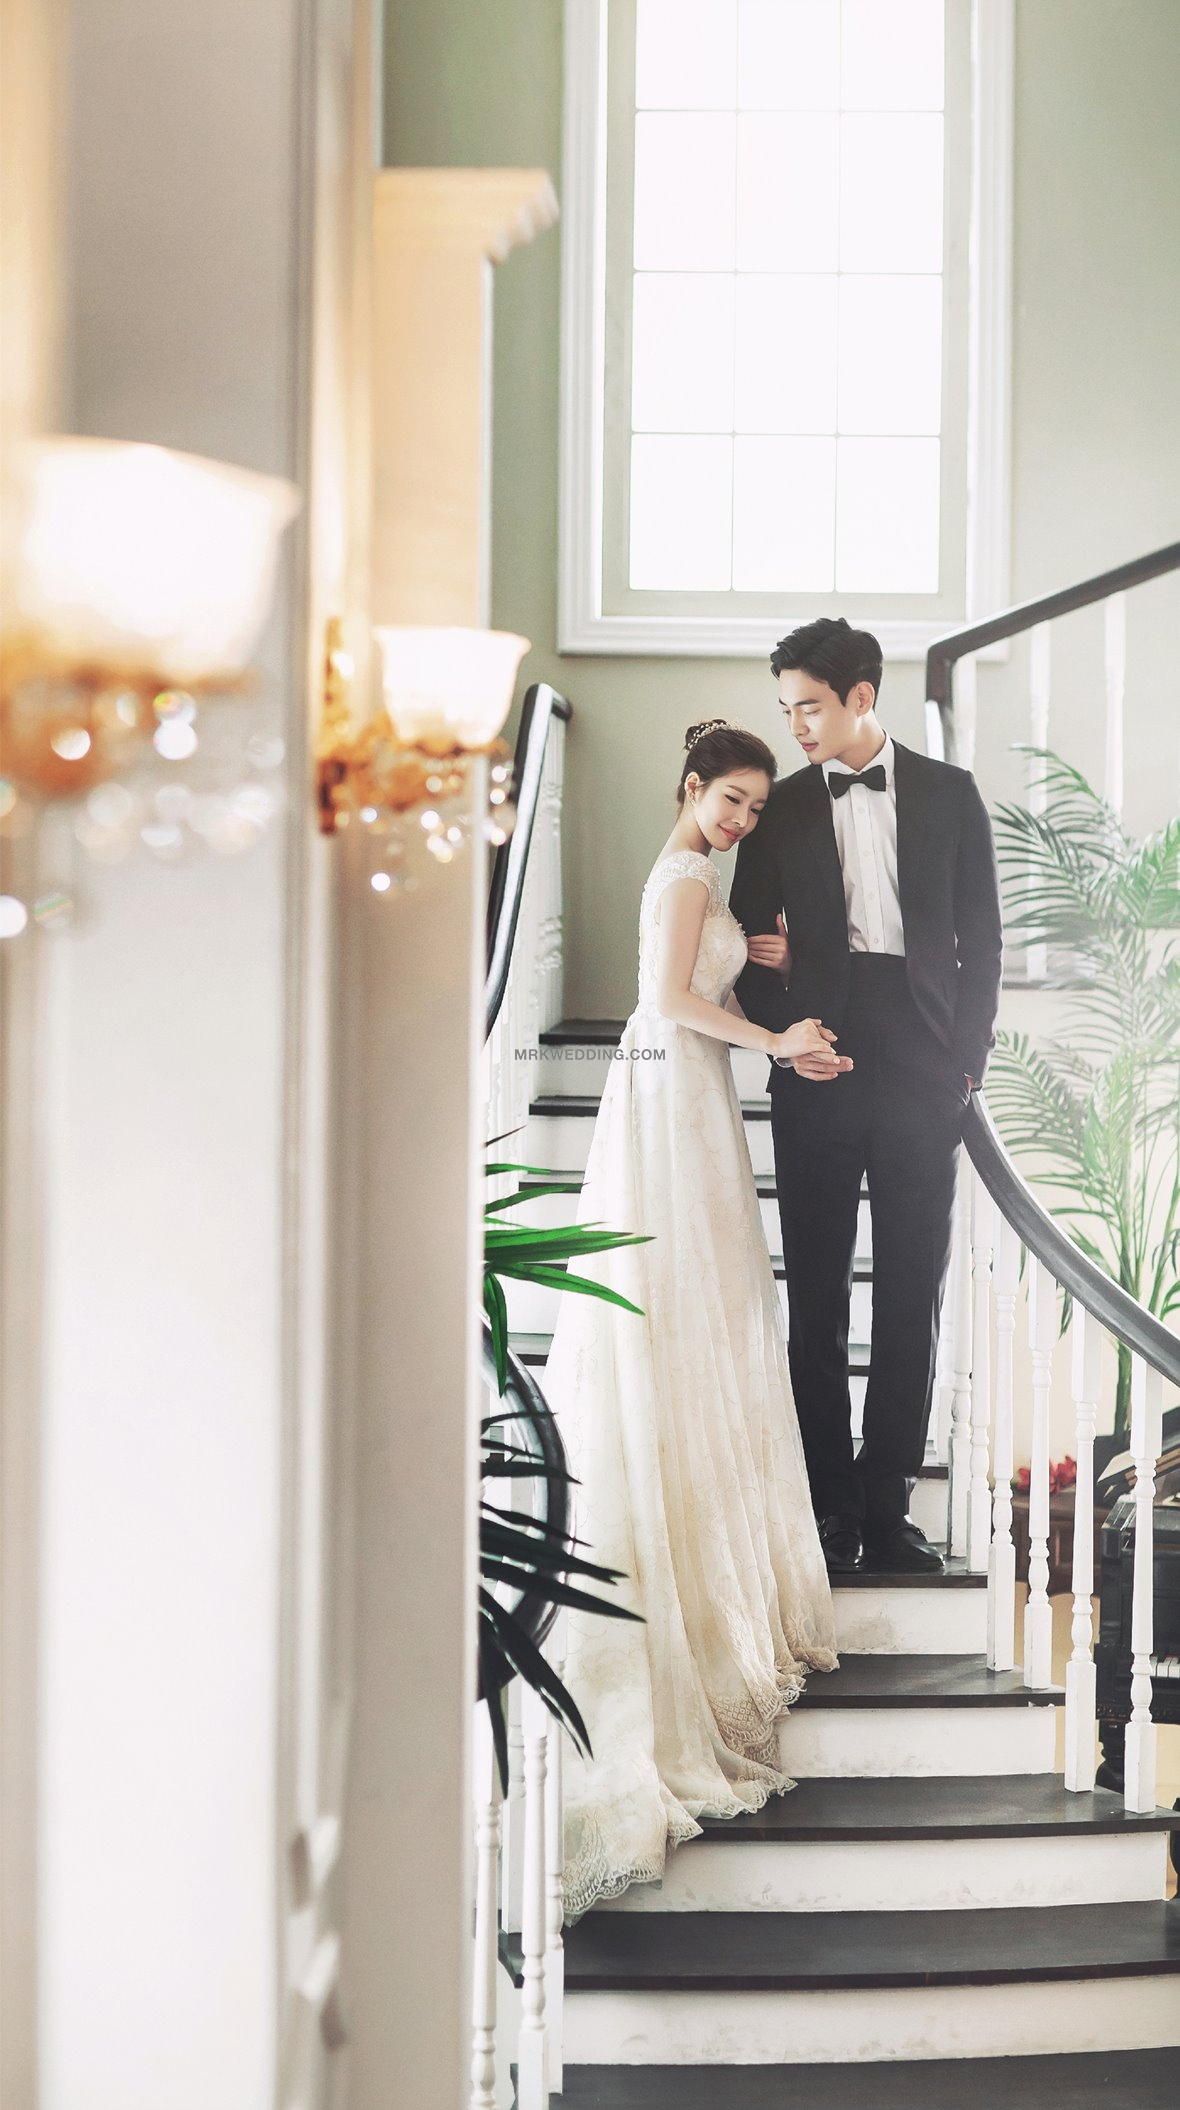 #koreaprewedding (32).jpg